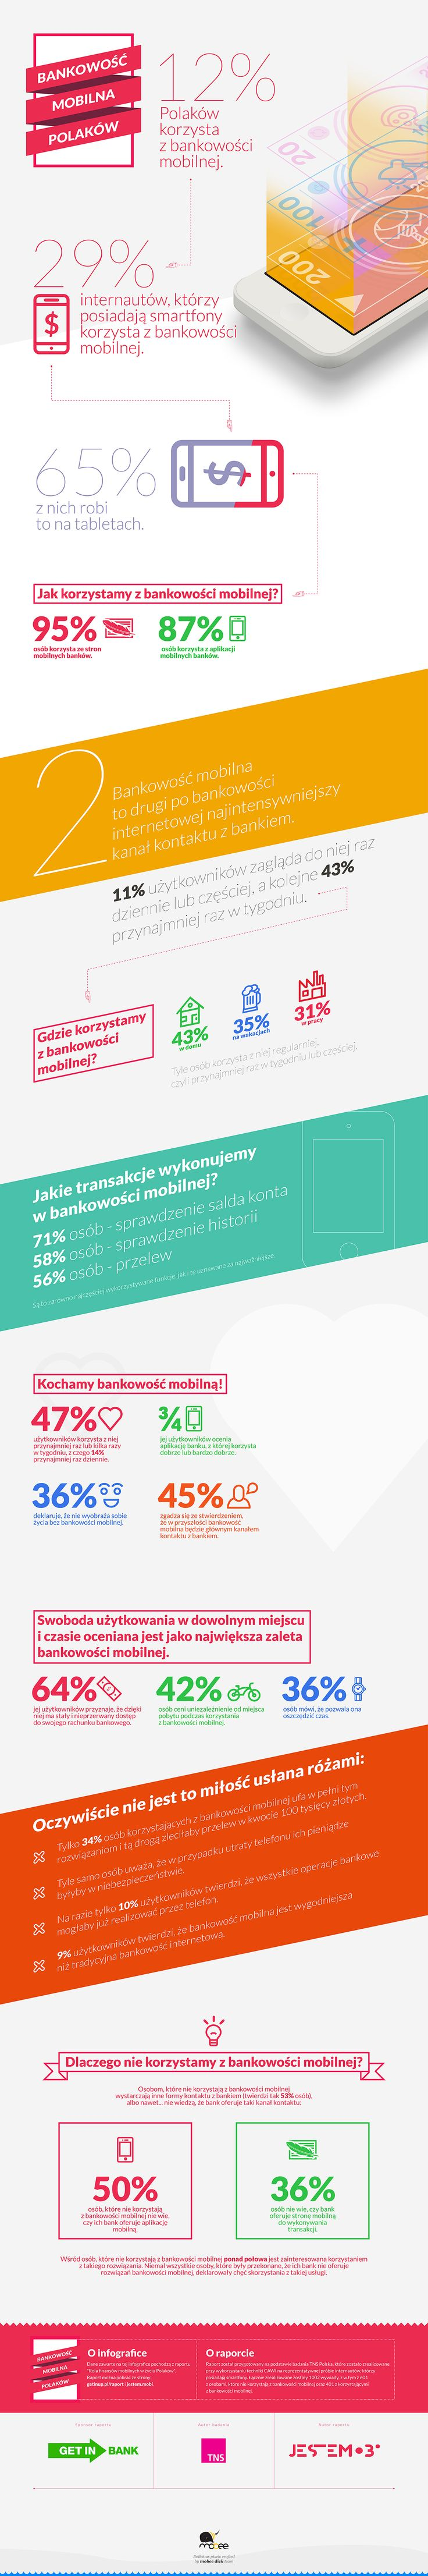 #mobile #banking #mbanking usage in Poland in 2013 (jestem.mobi's infographic)